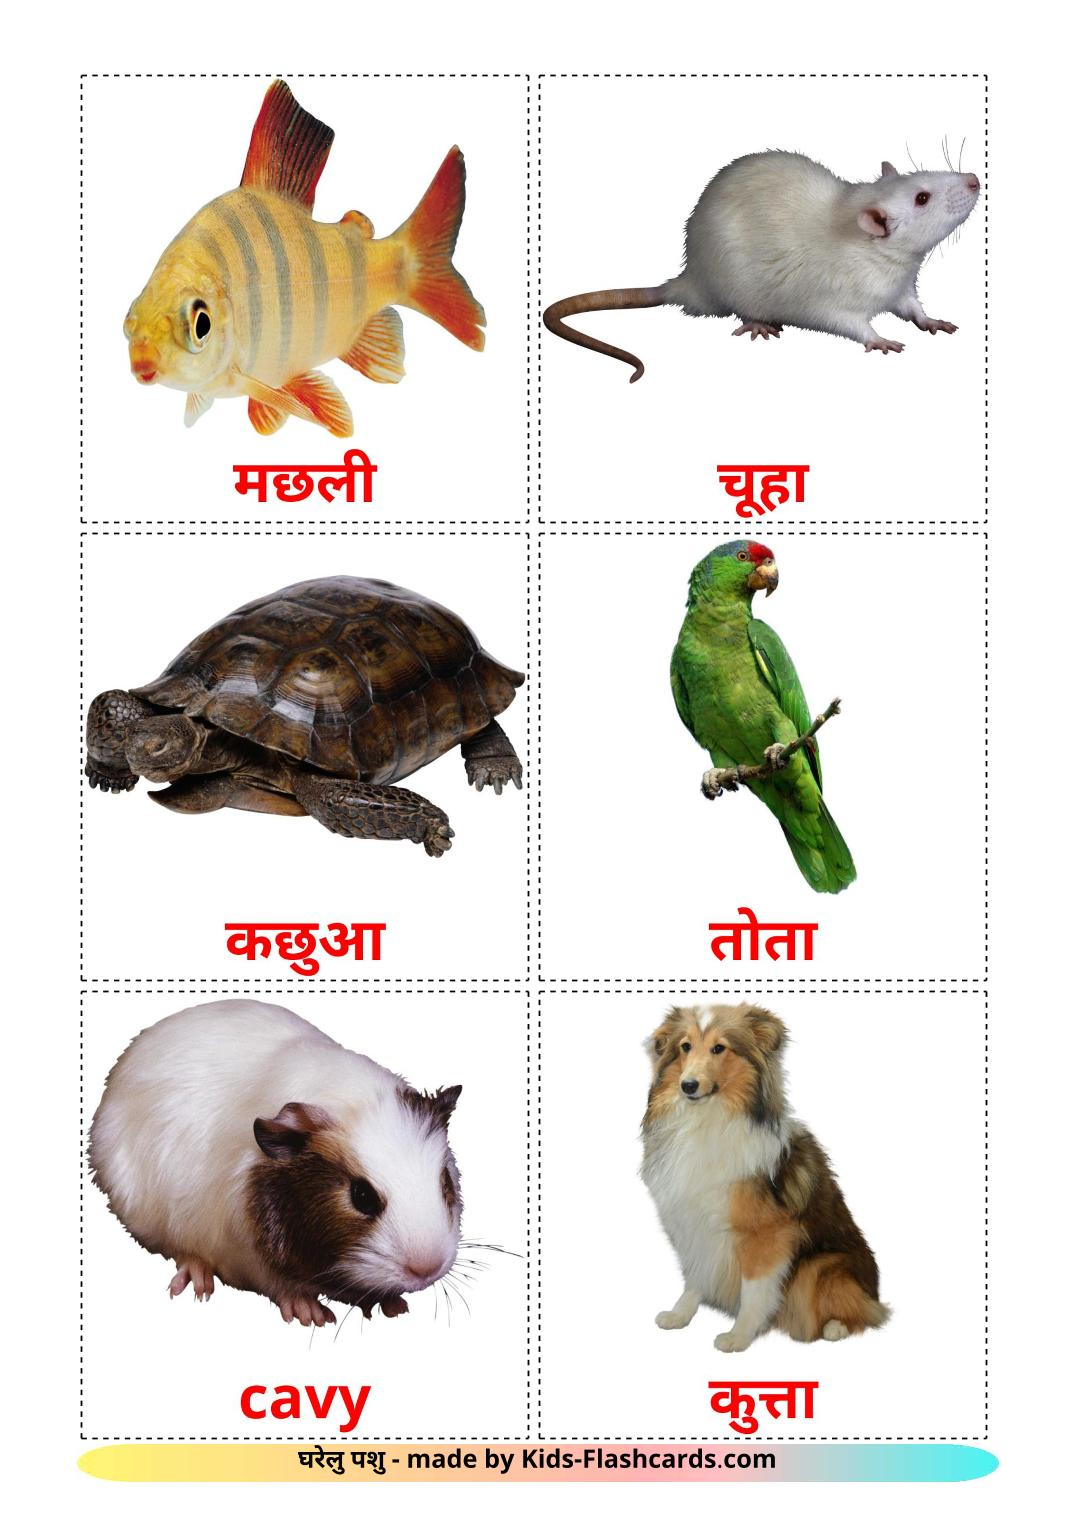 Domestic animals - 10 Free Printable devanagari Flashcards